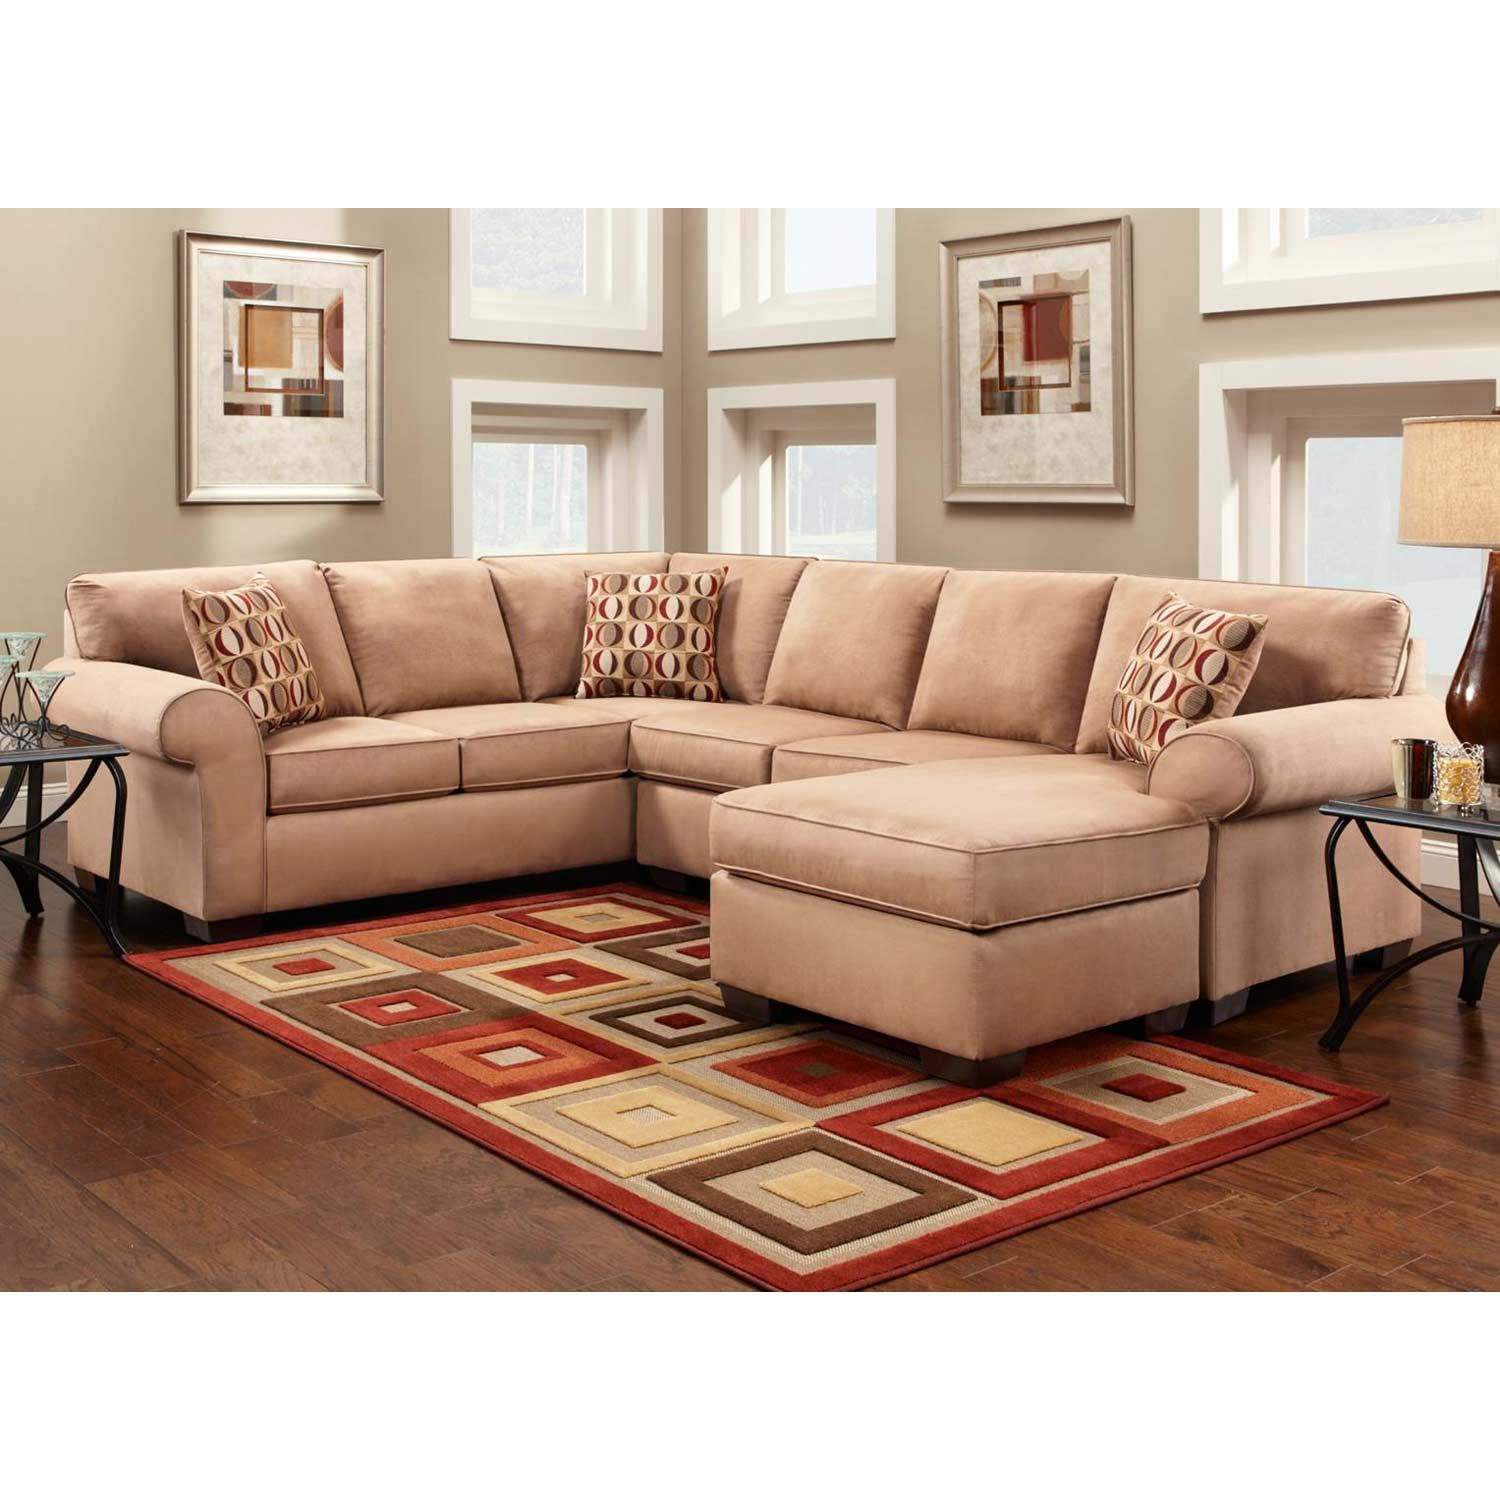 Allegany Microfiber Chaise Sectional Sofa Patriot Mocha Sectional Sofa Couch Sectional Sofa Sectional